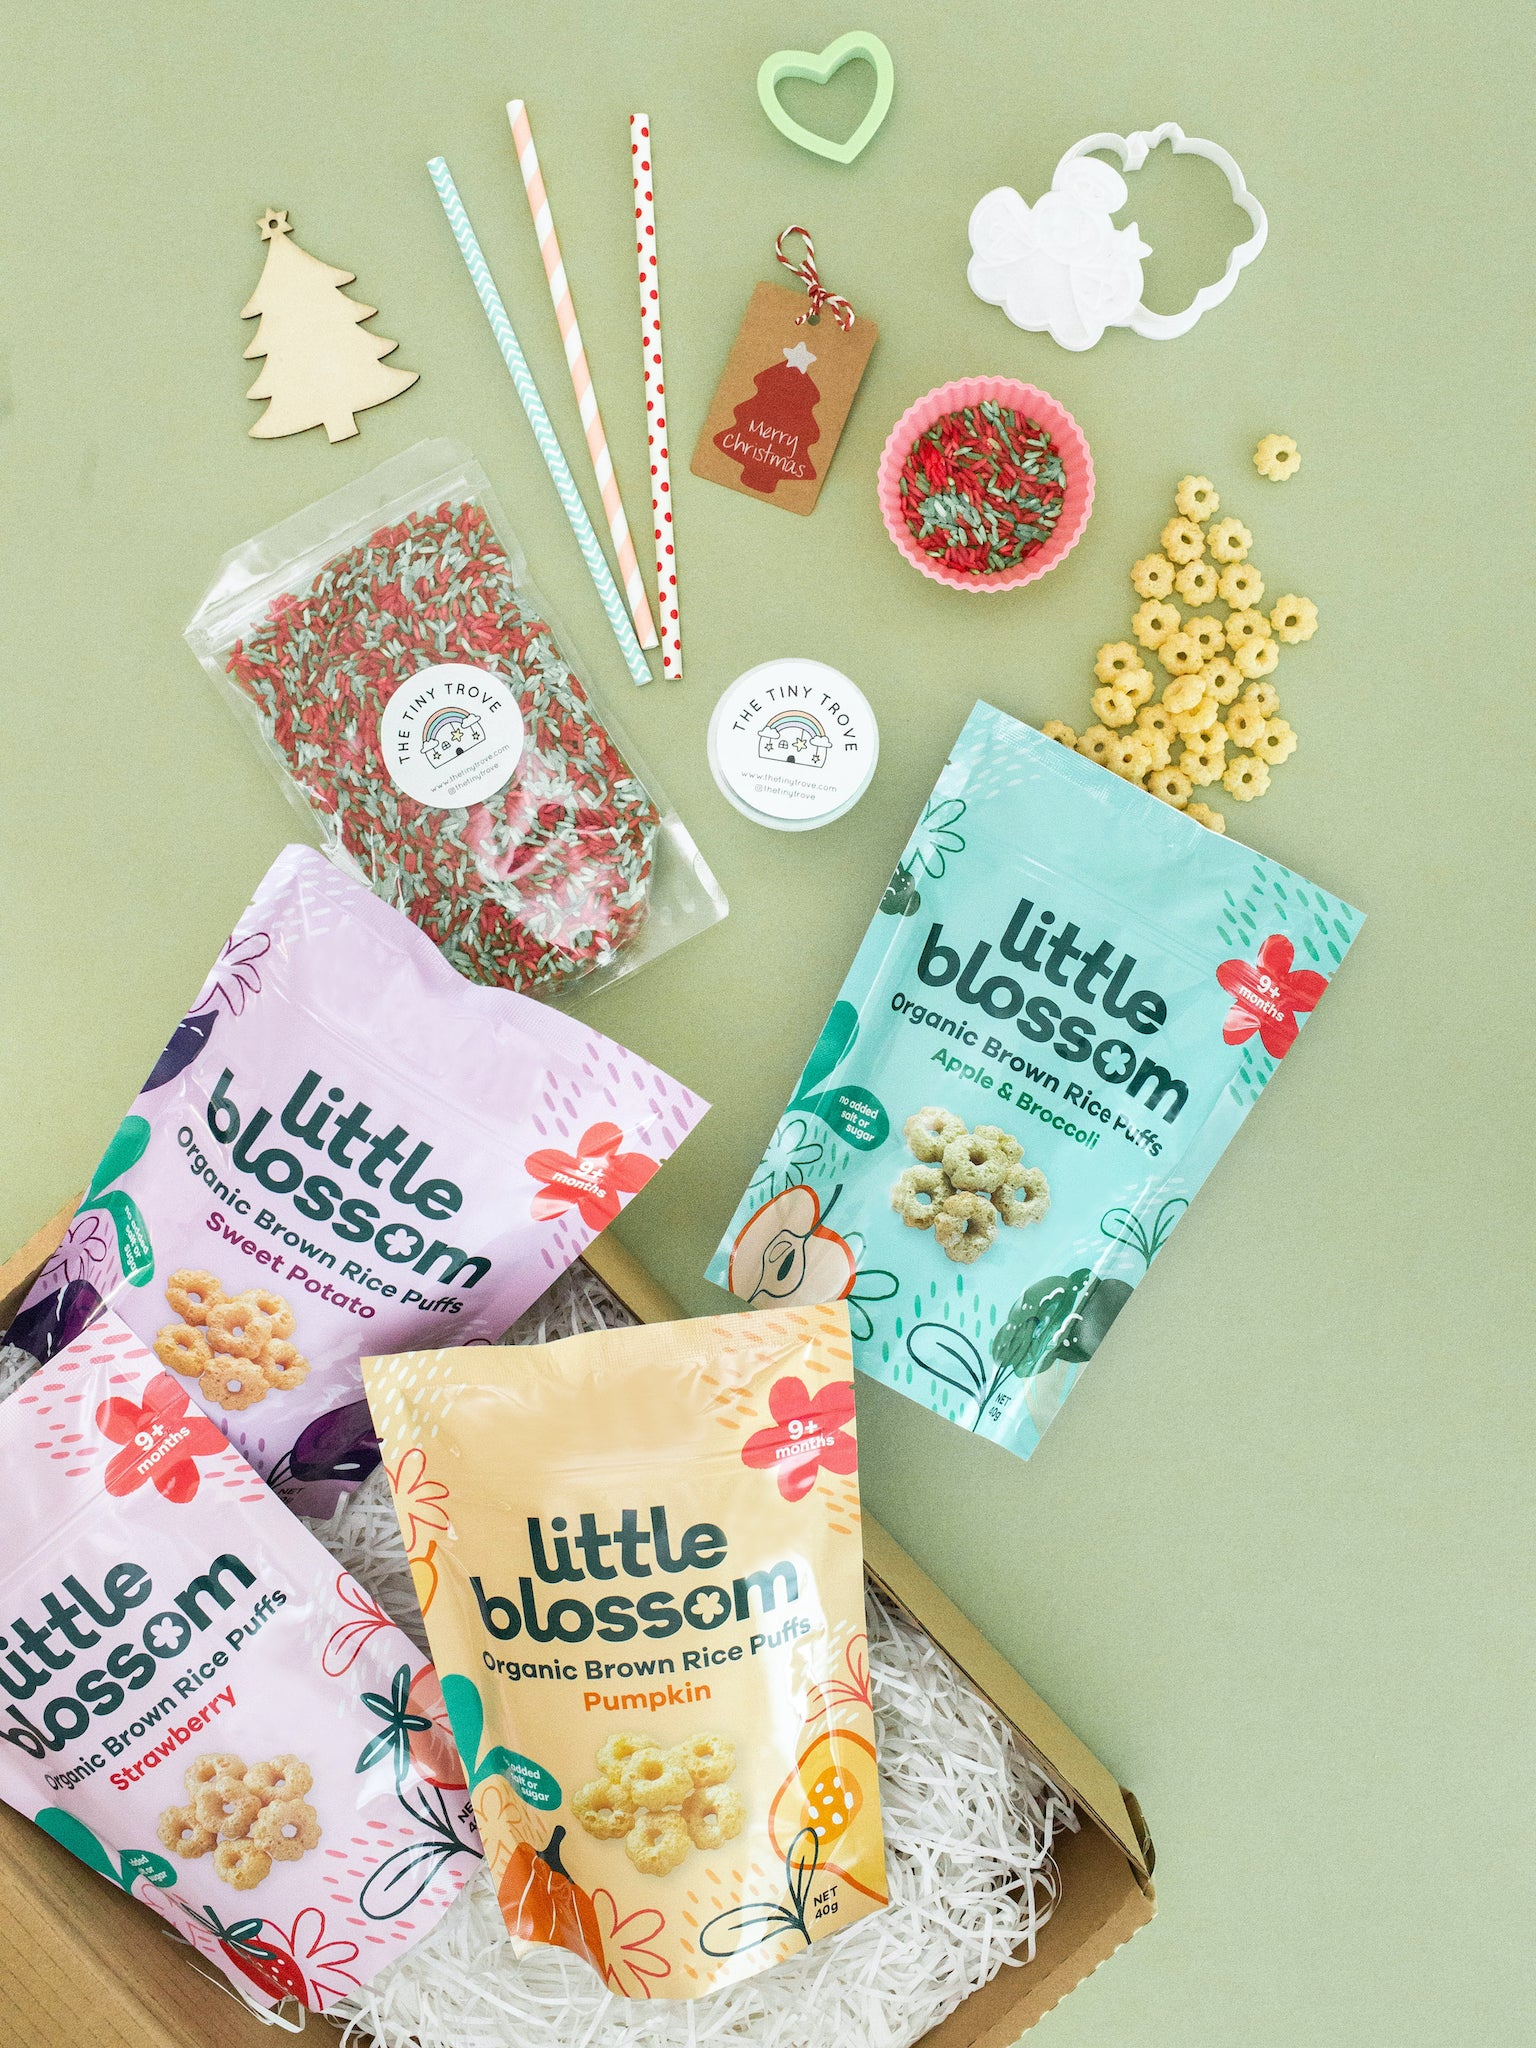 Little Blossom x The Tiny Trove Gift Set